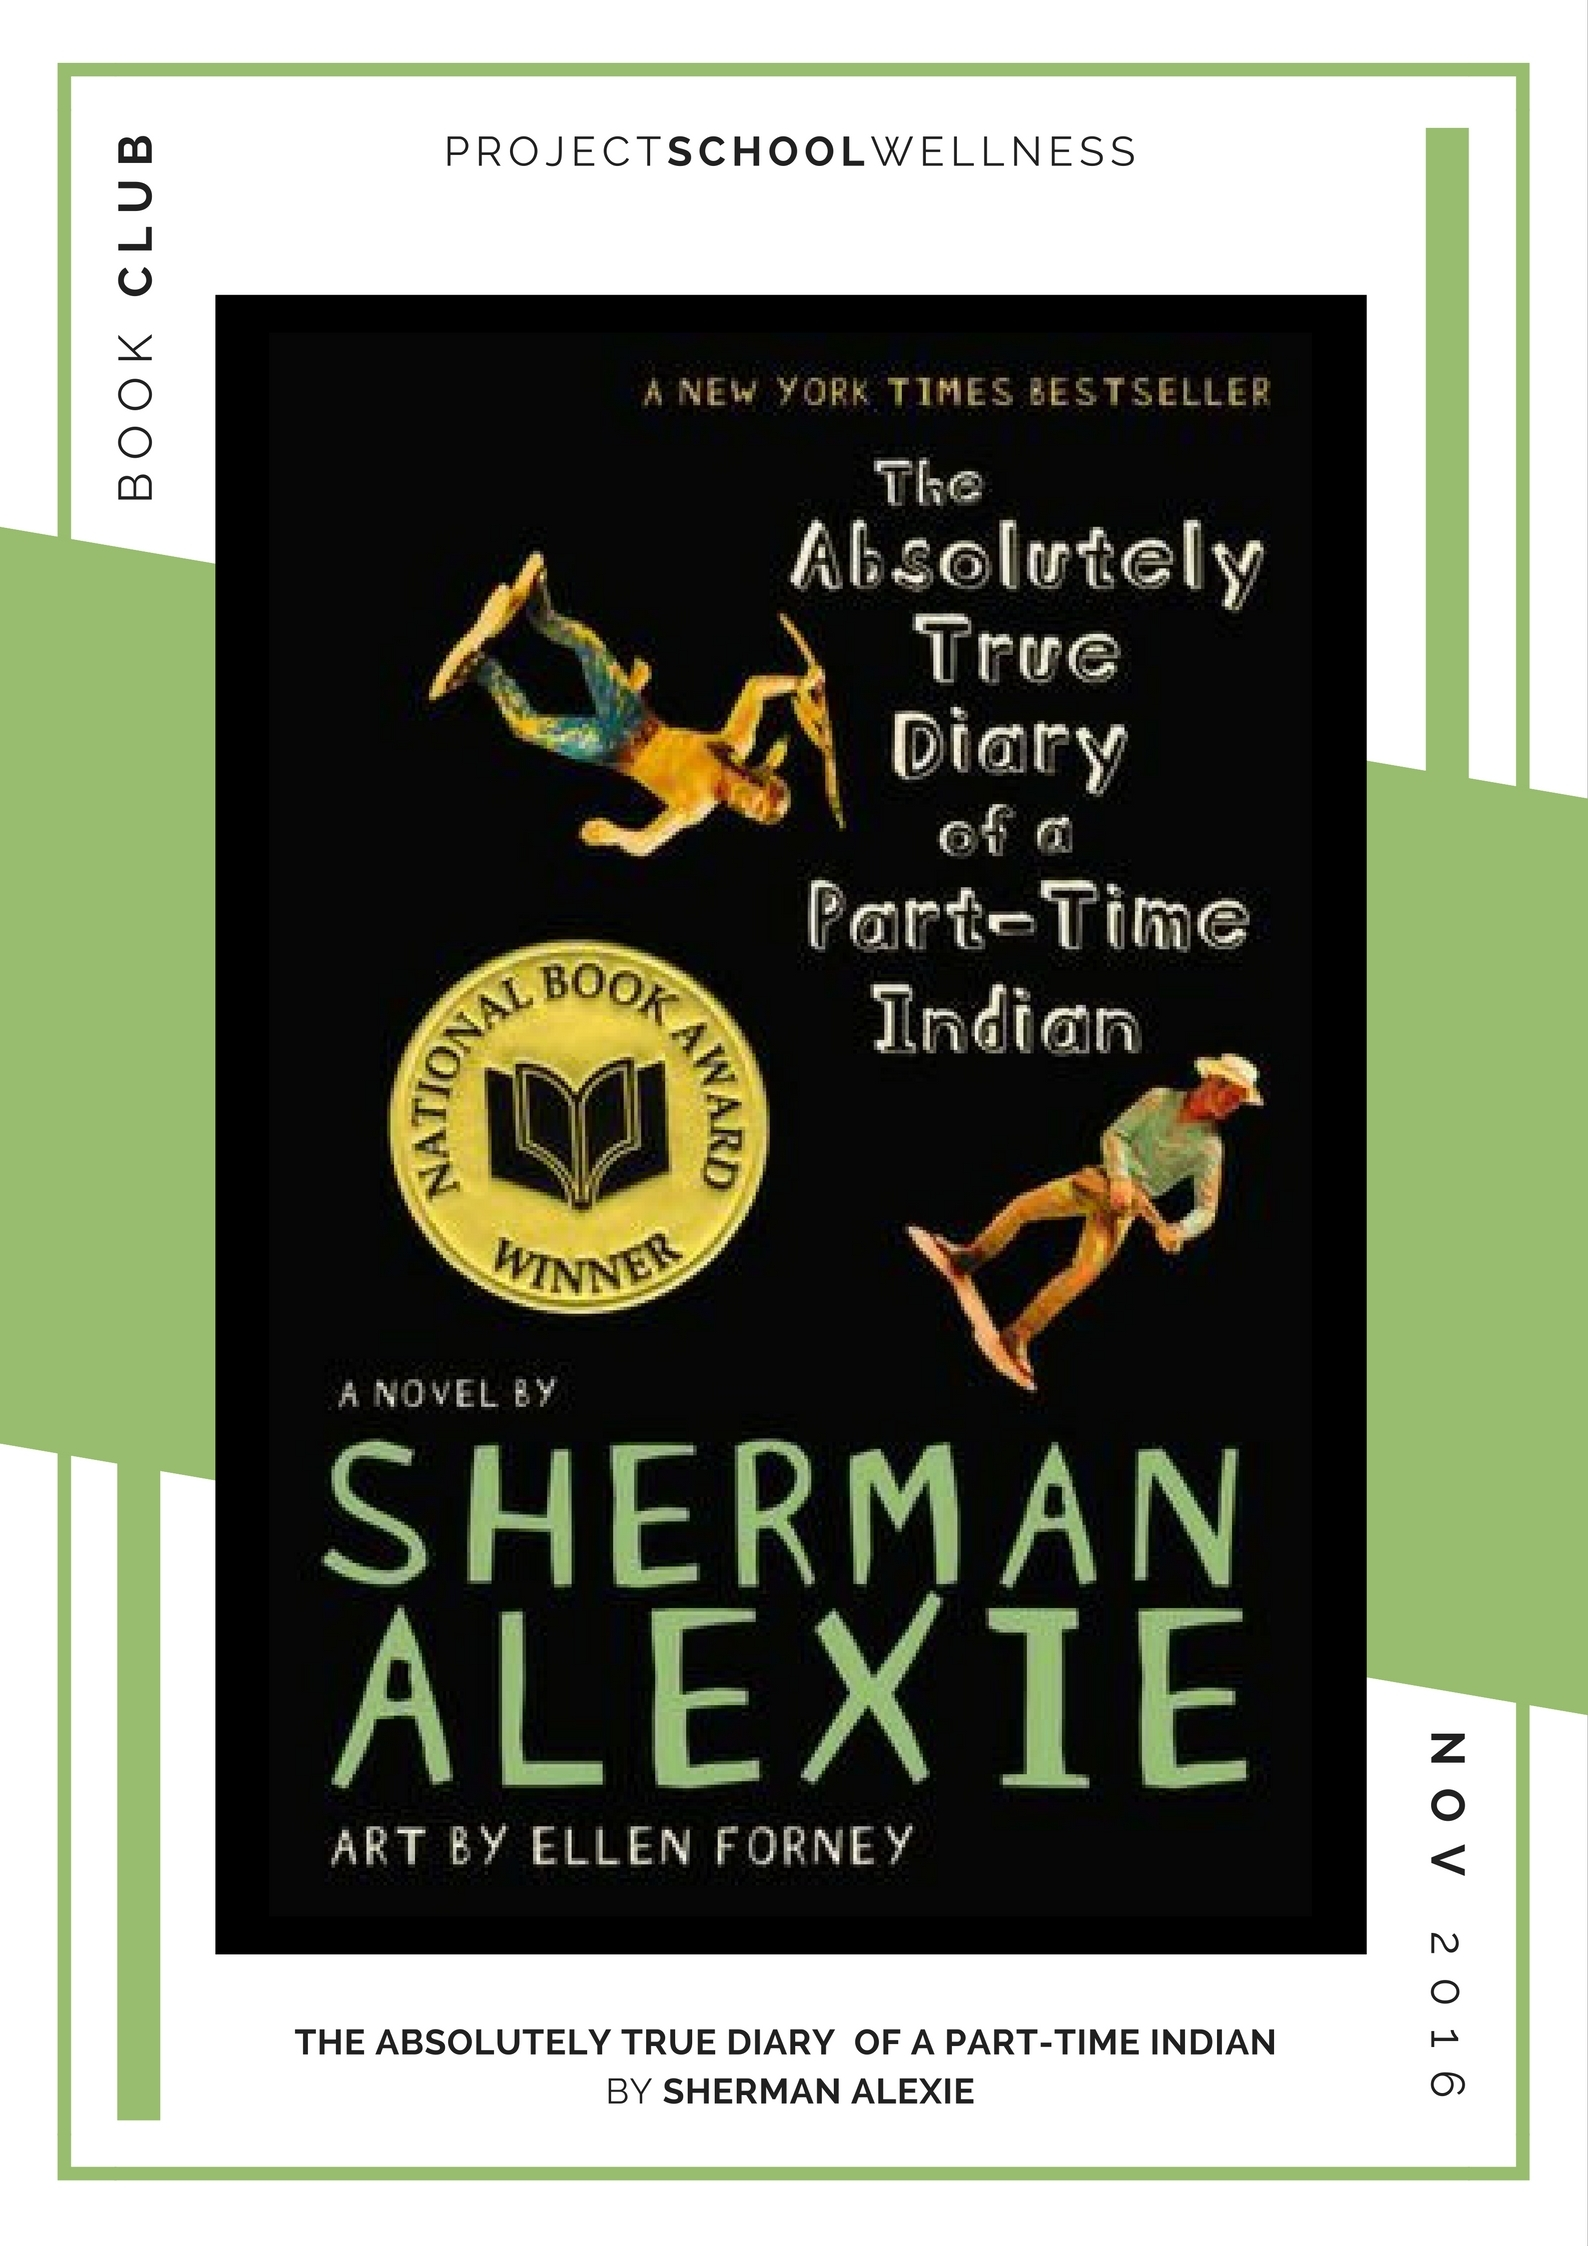 Sherman Alexie, The Absolutely True Diary of a Part-Time Indian - Project School Wellness' Teacher Book Club, must read books for every teacher!